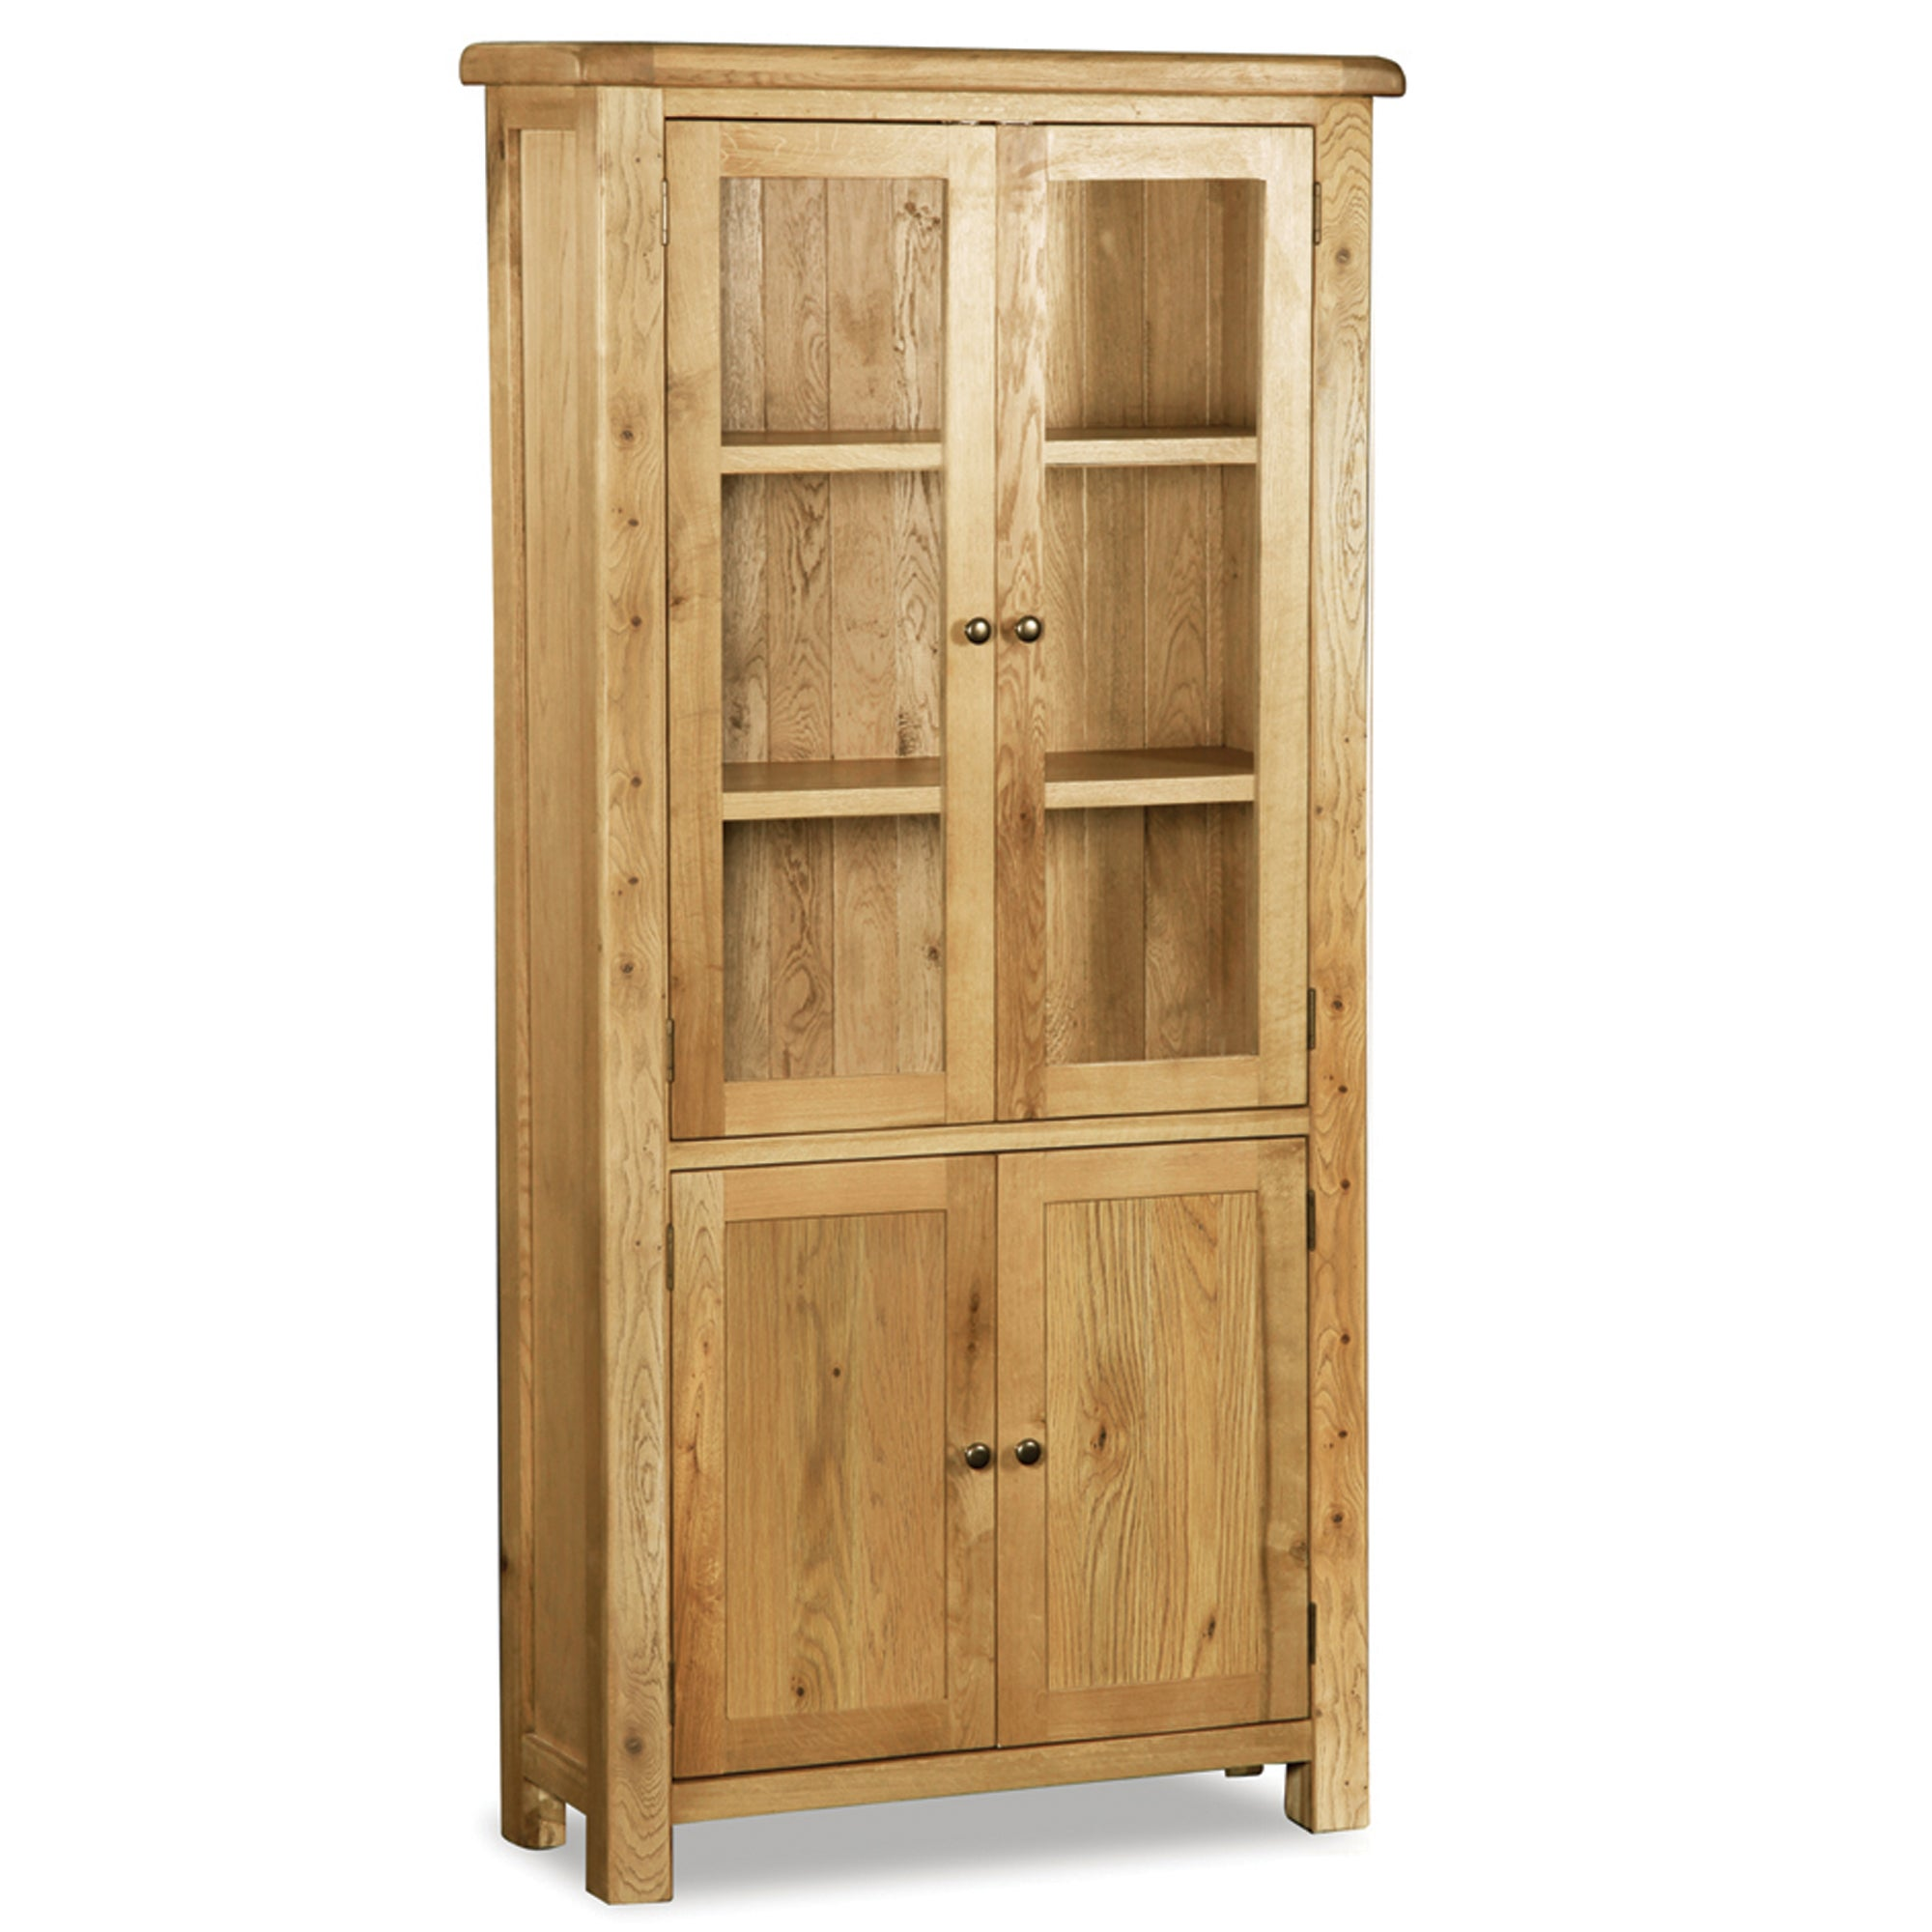 Wexford Oak Display Cabinet